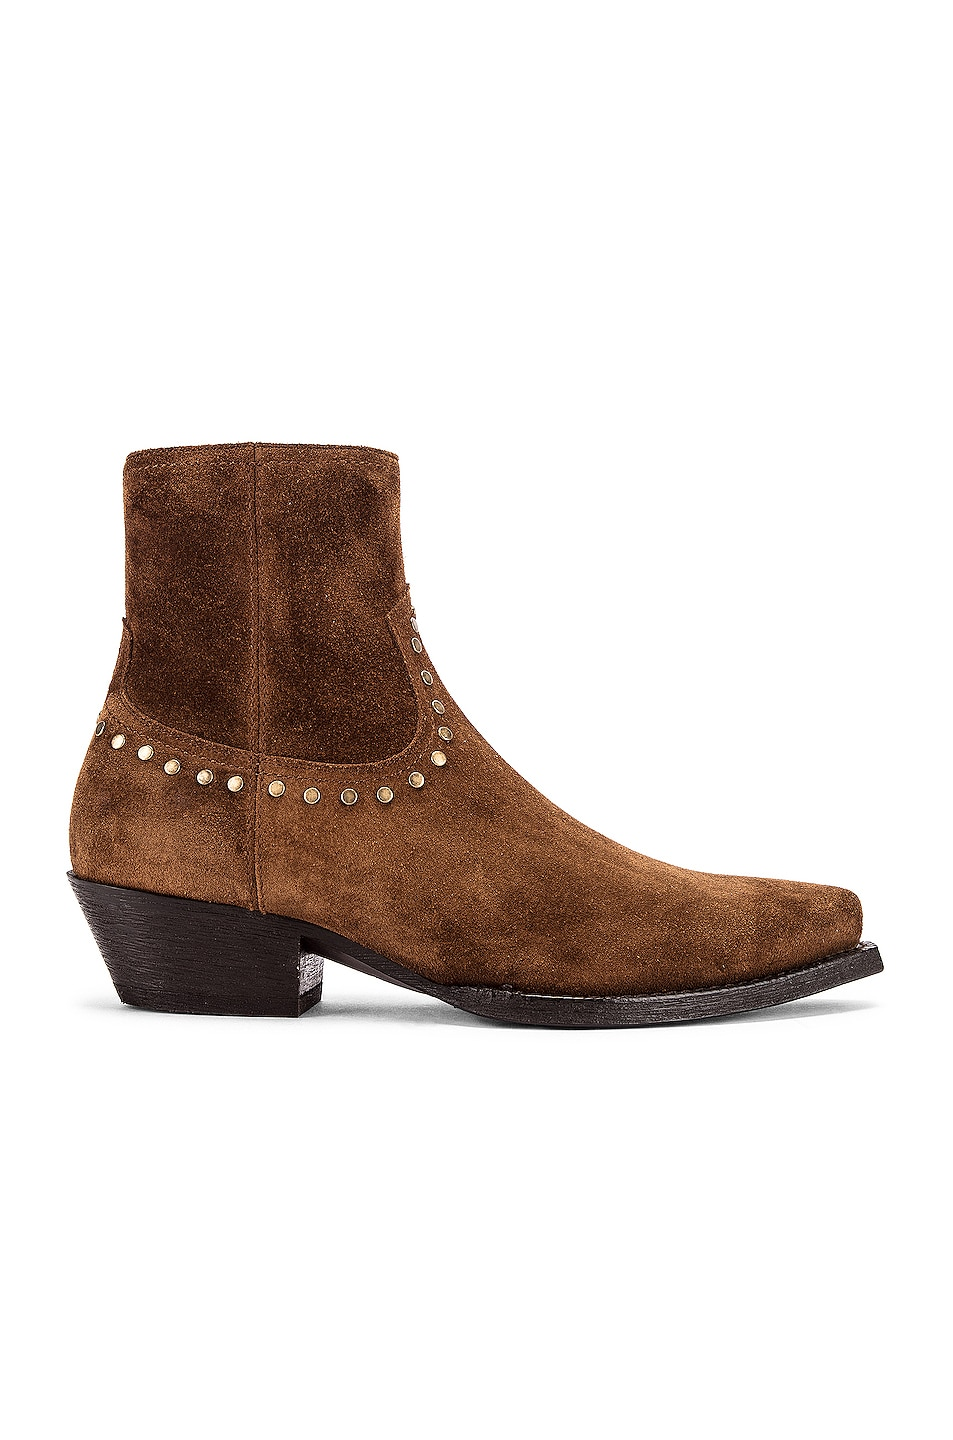 Image 1 of Saint Laurent Lukas Zip Stud Ankle Booties in Land